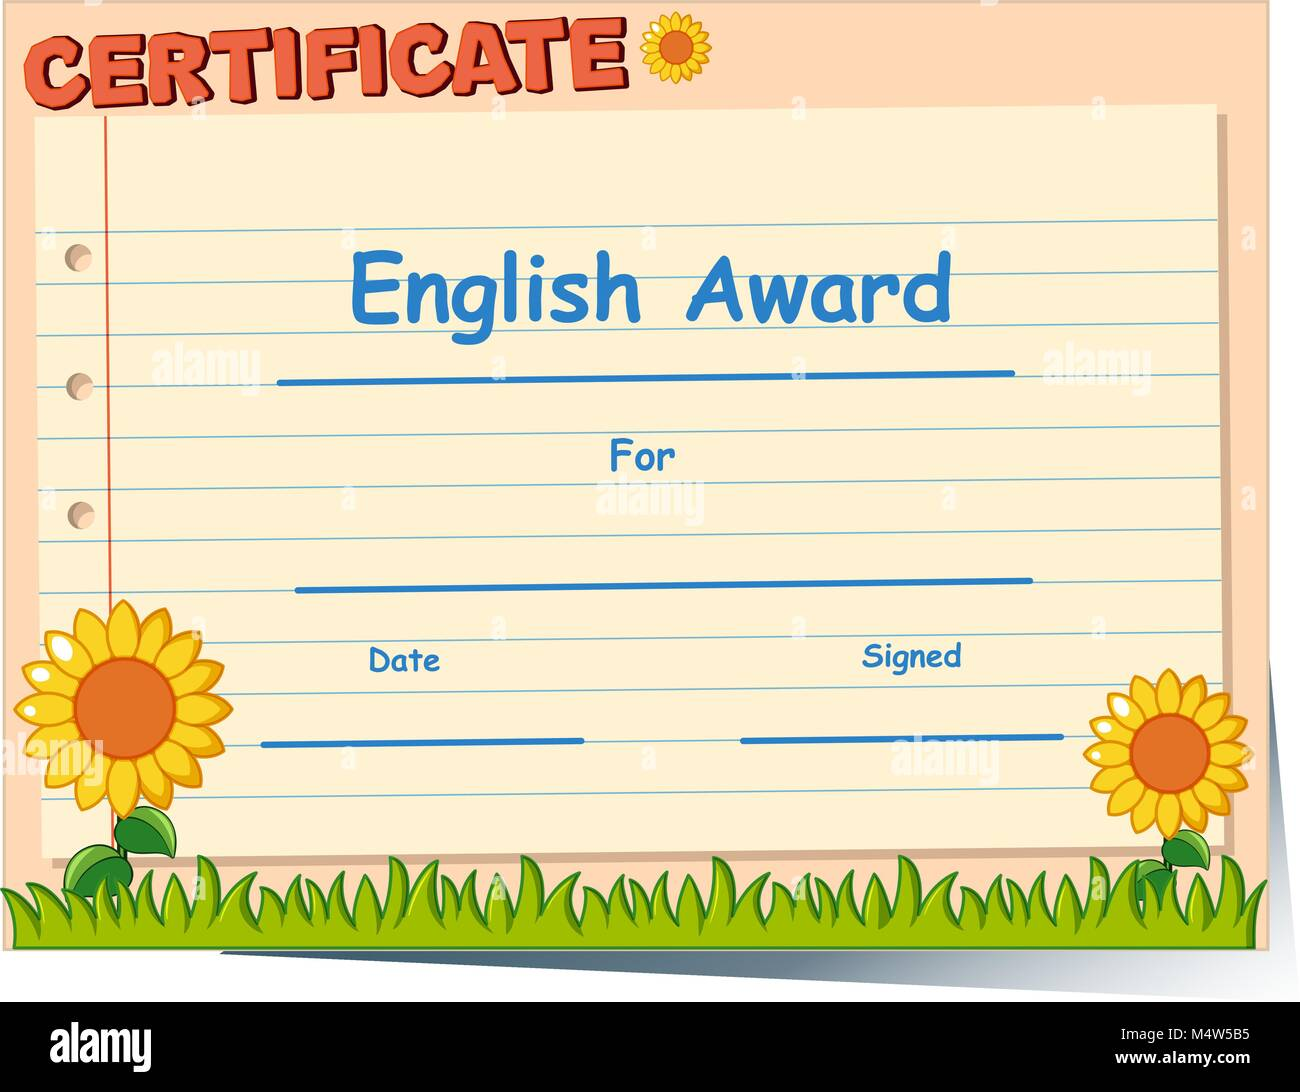 English garden stock vector images alamy certificate template for english award illustration stock vector 1betcityfo Images